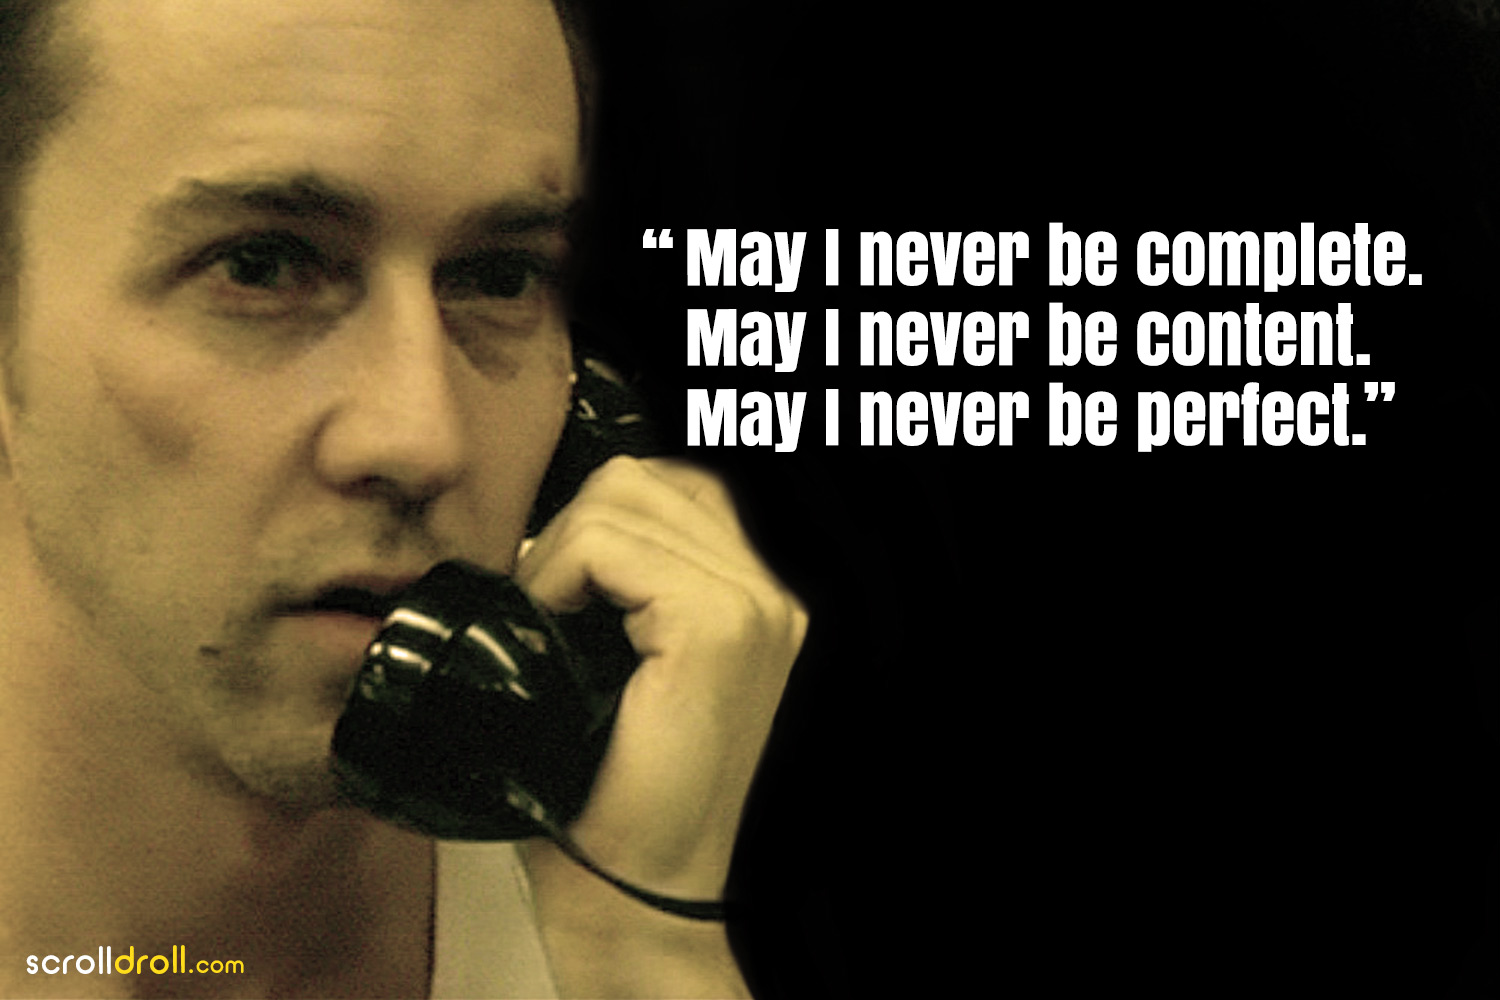 Fight Club Quotes Fight Club Quotes (9)   ScrollDroll Fight Club Quotes